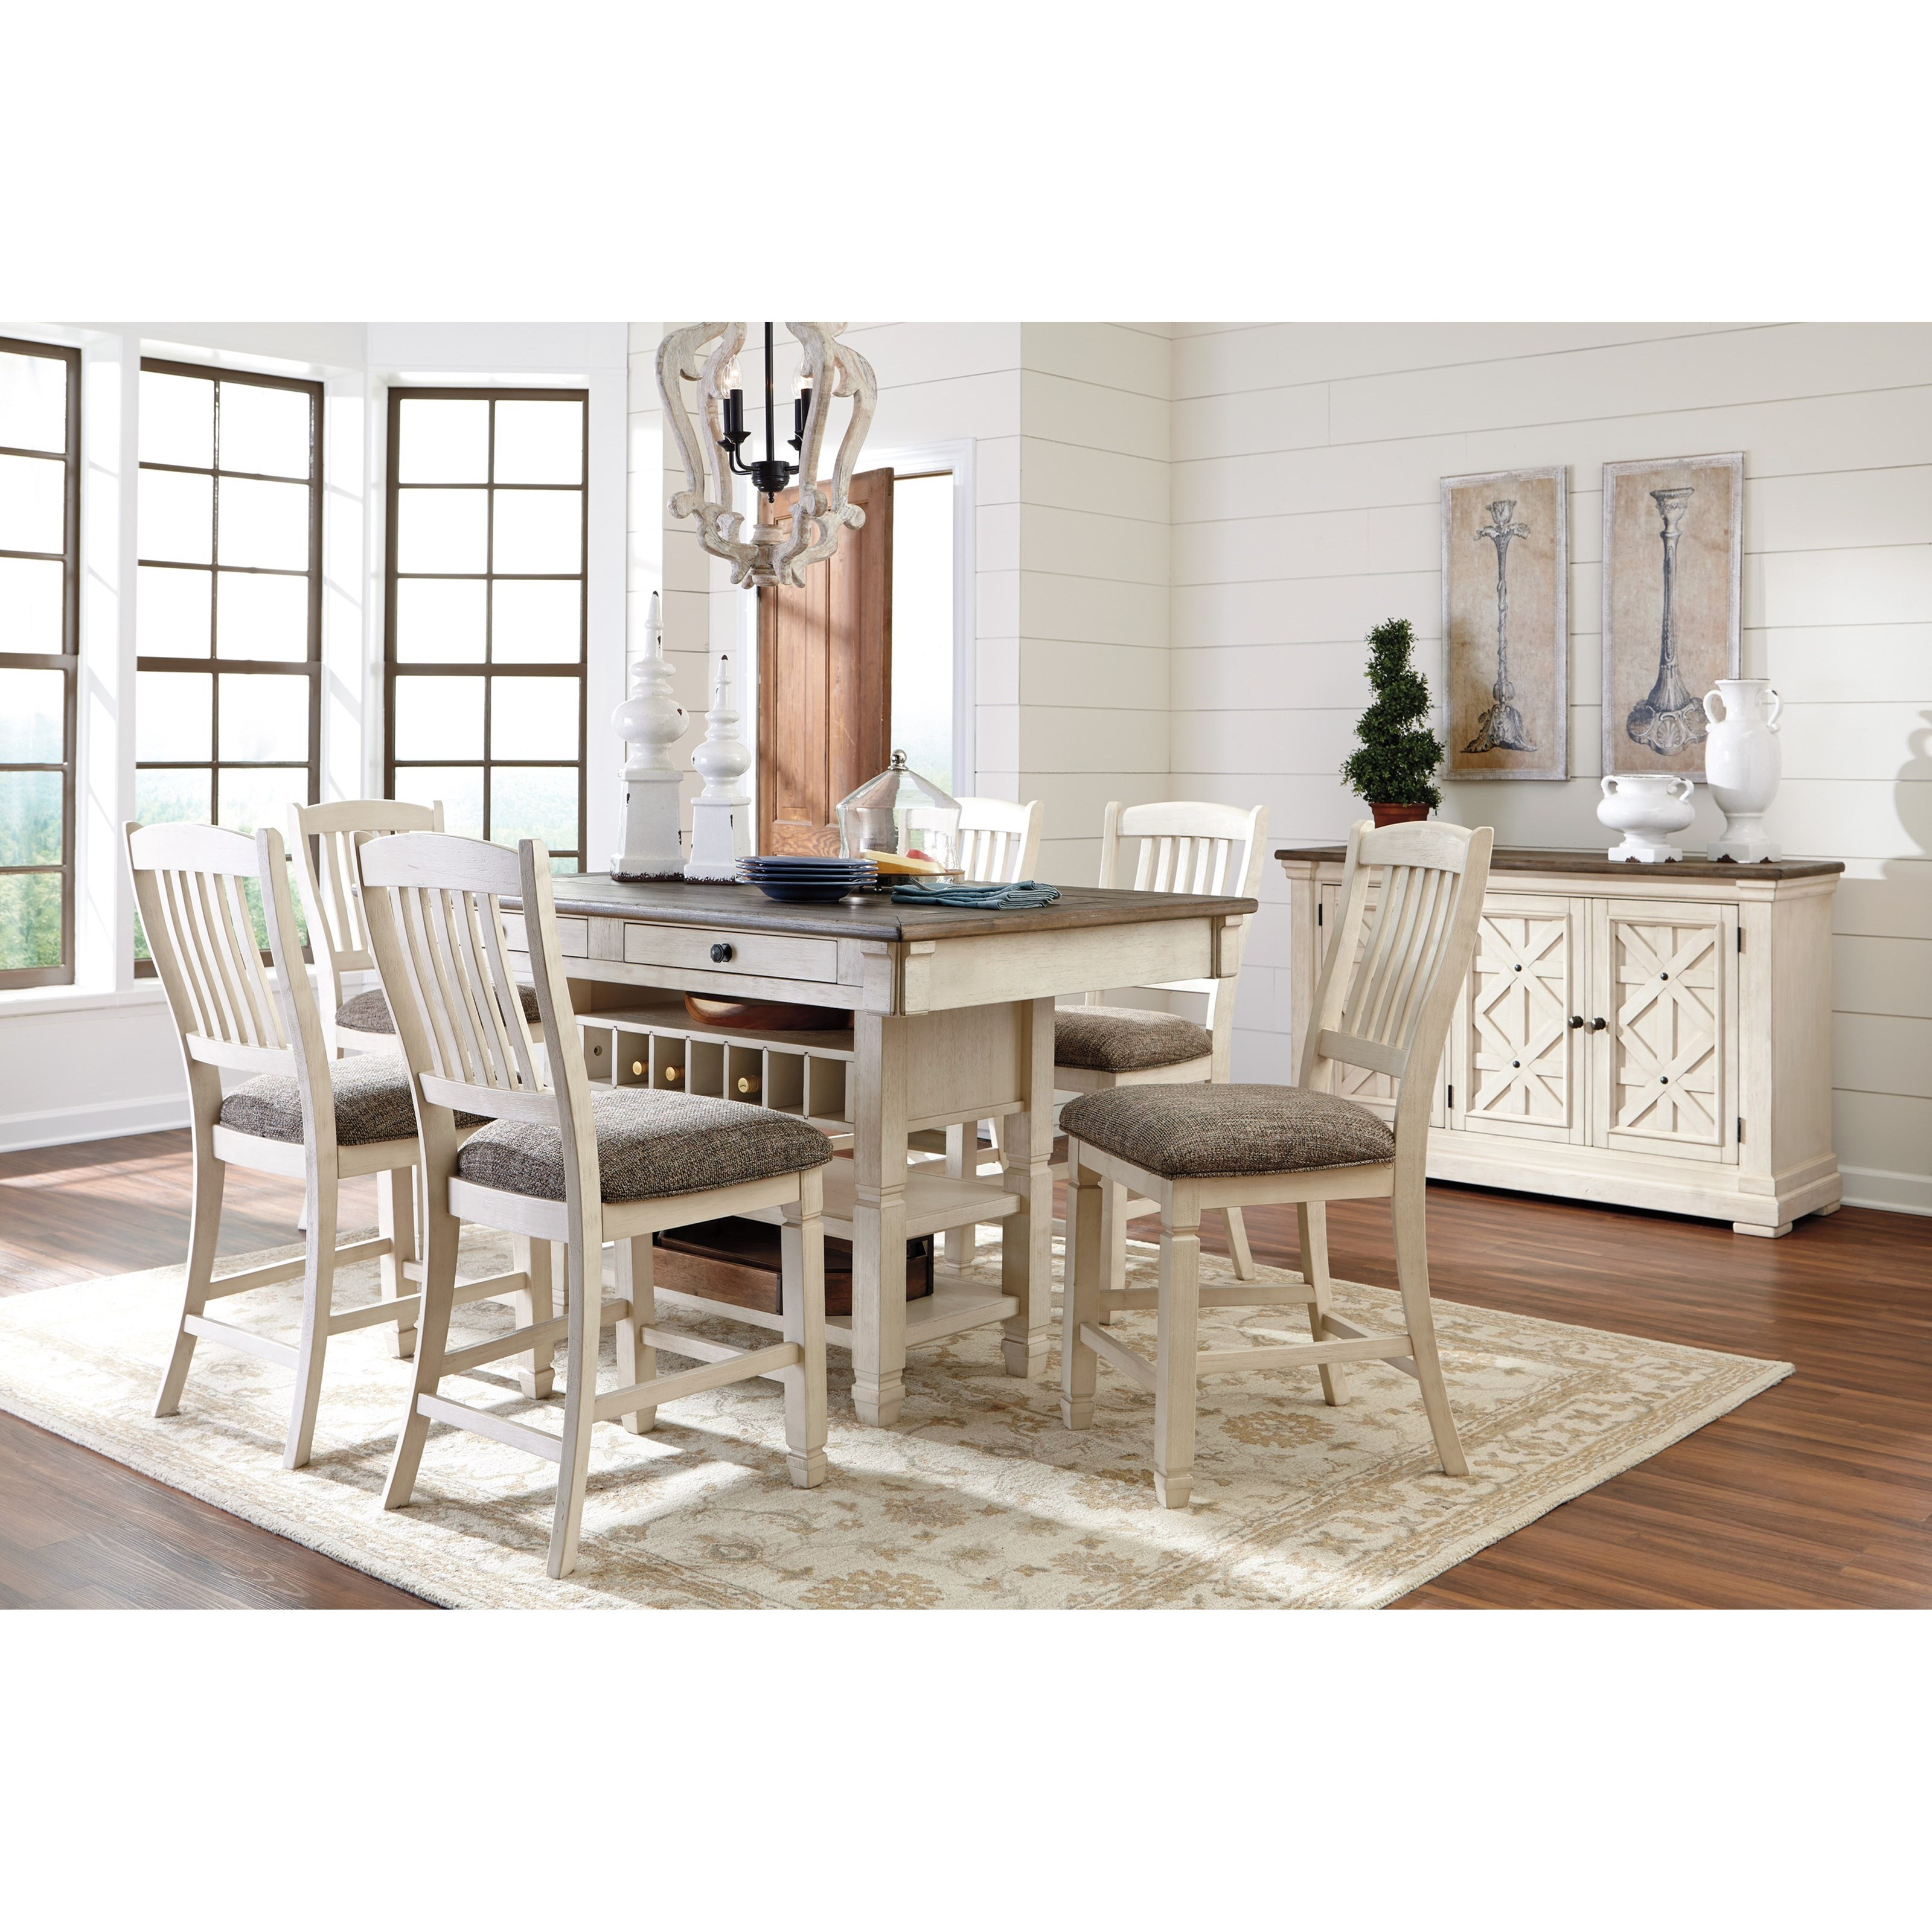 Signature design by ashley bolanburg casual dining room for Casual dining room furniture